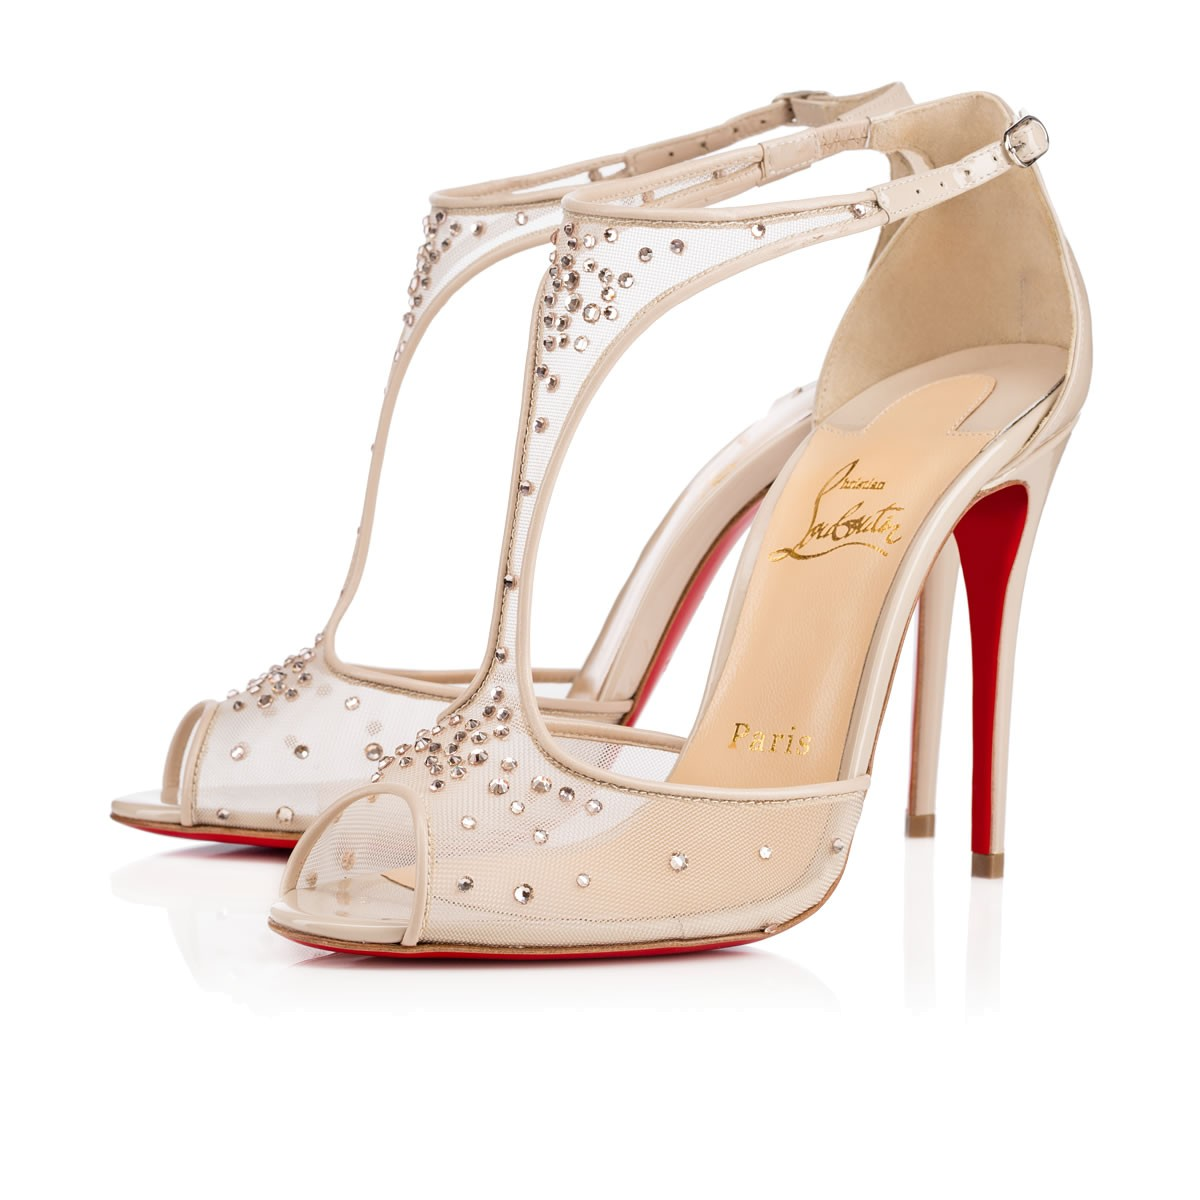 Christian Louboutin Pantinana Wedding Shoes